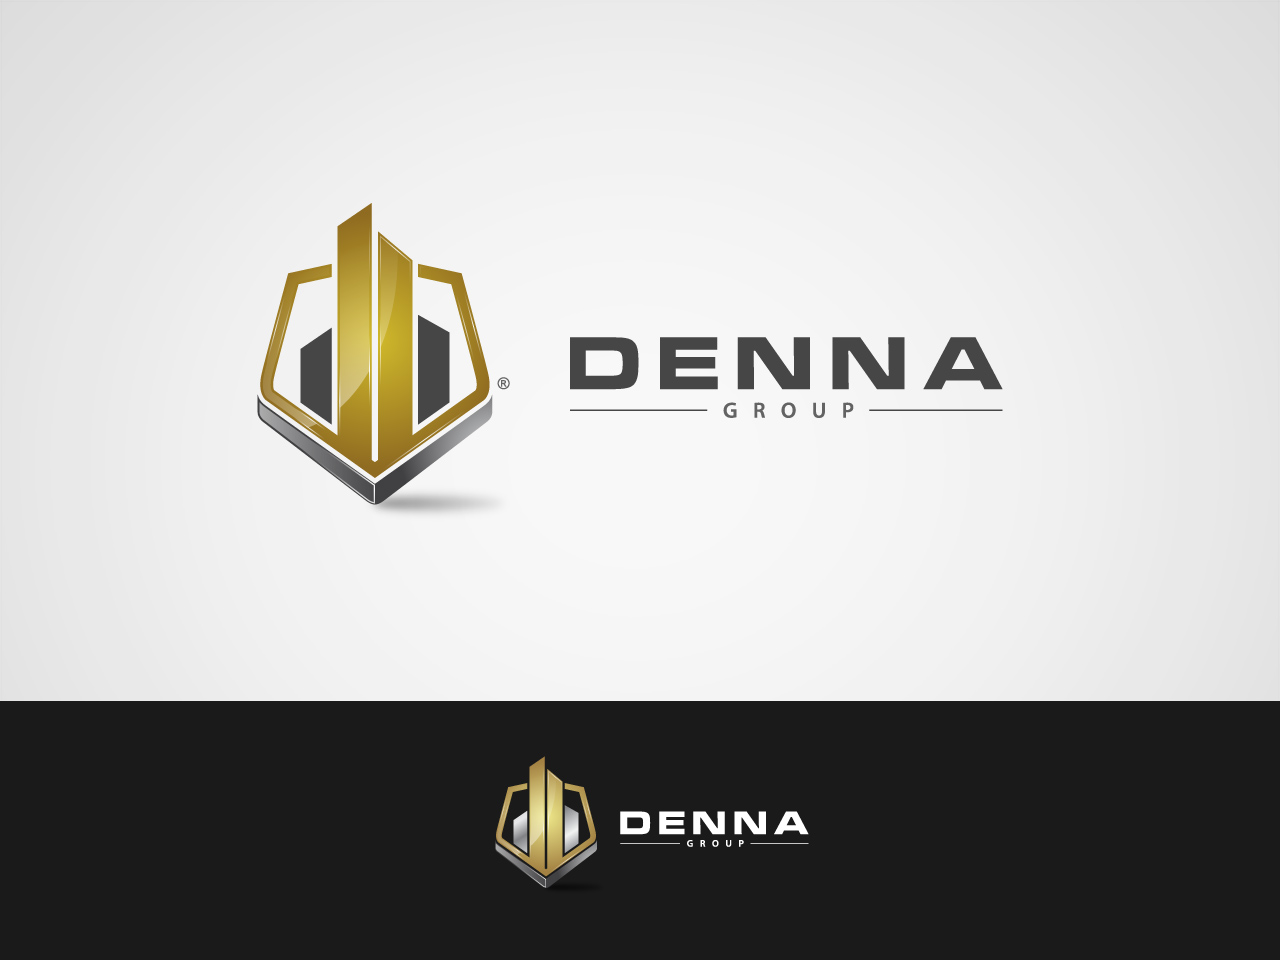 Logo Design by jpbituin - Entry No. 38 in the Logo Design Contest Denna Group Logo Design.